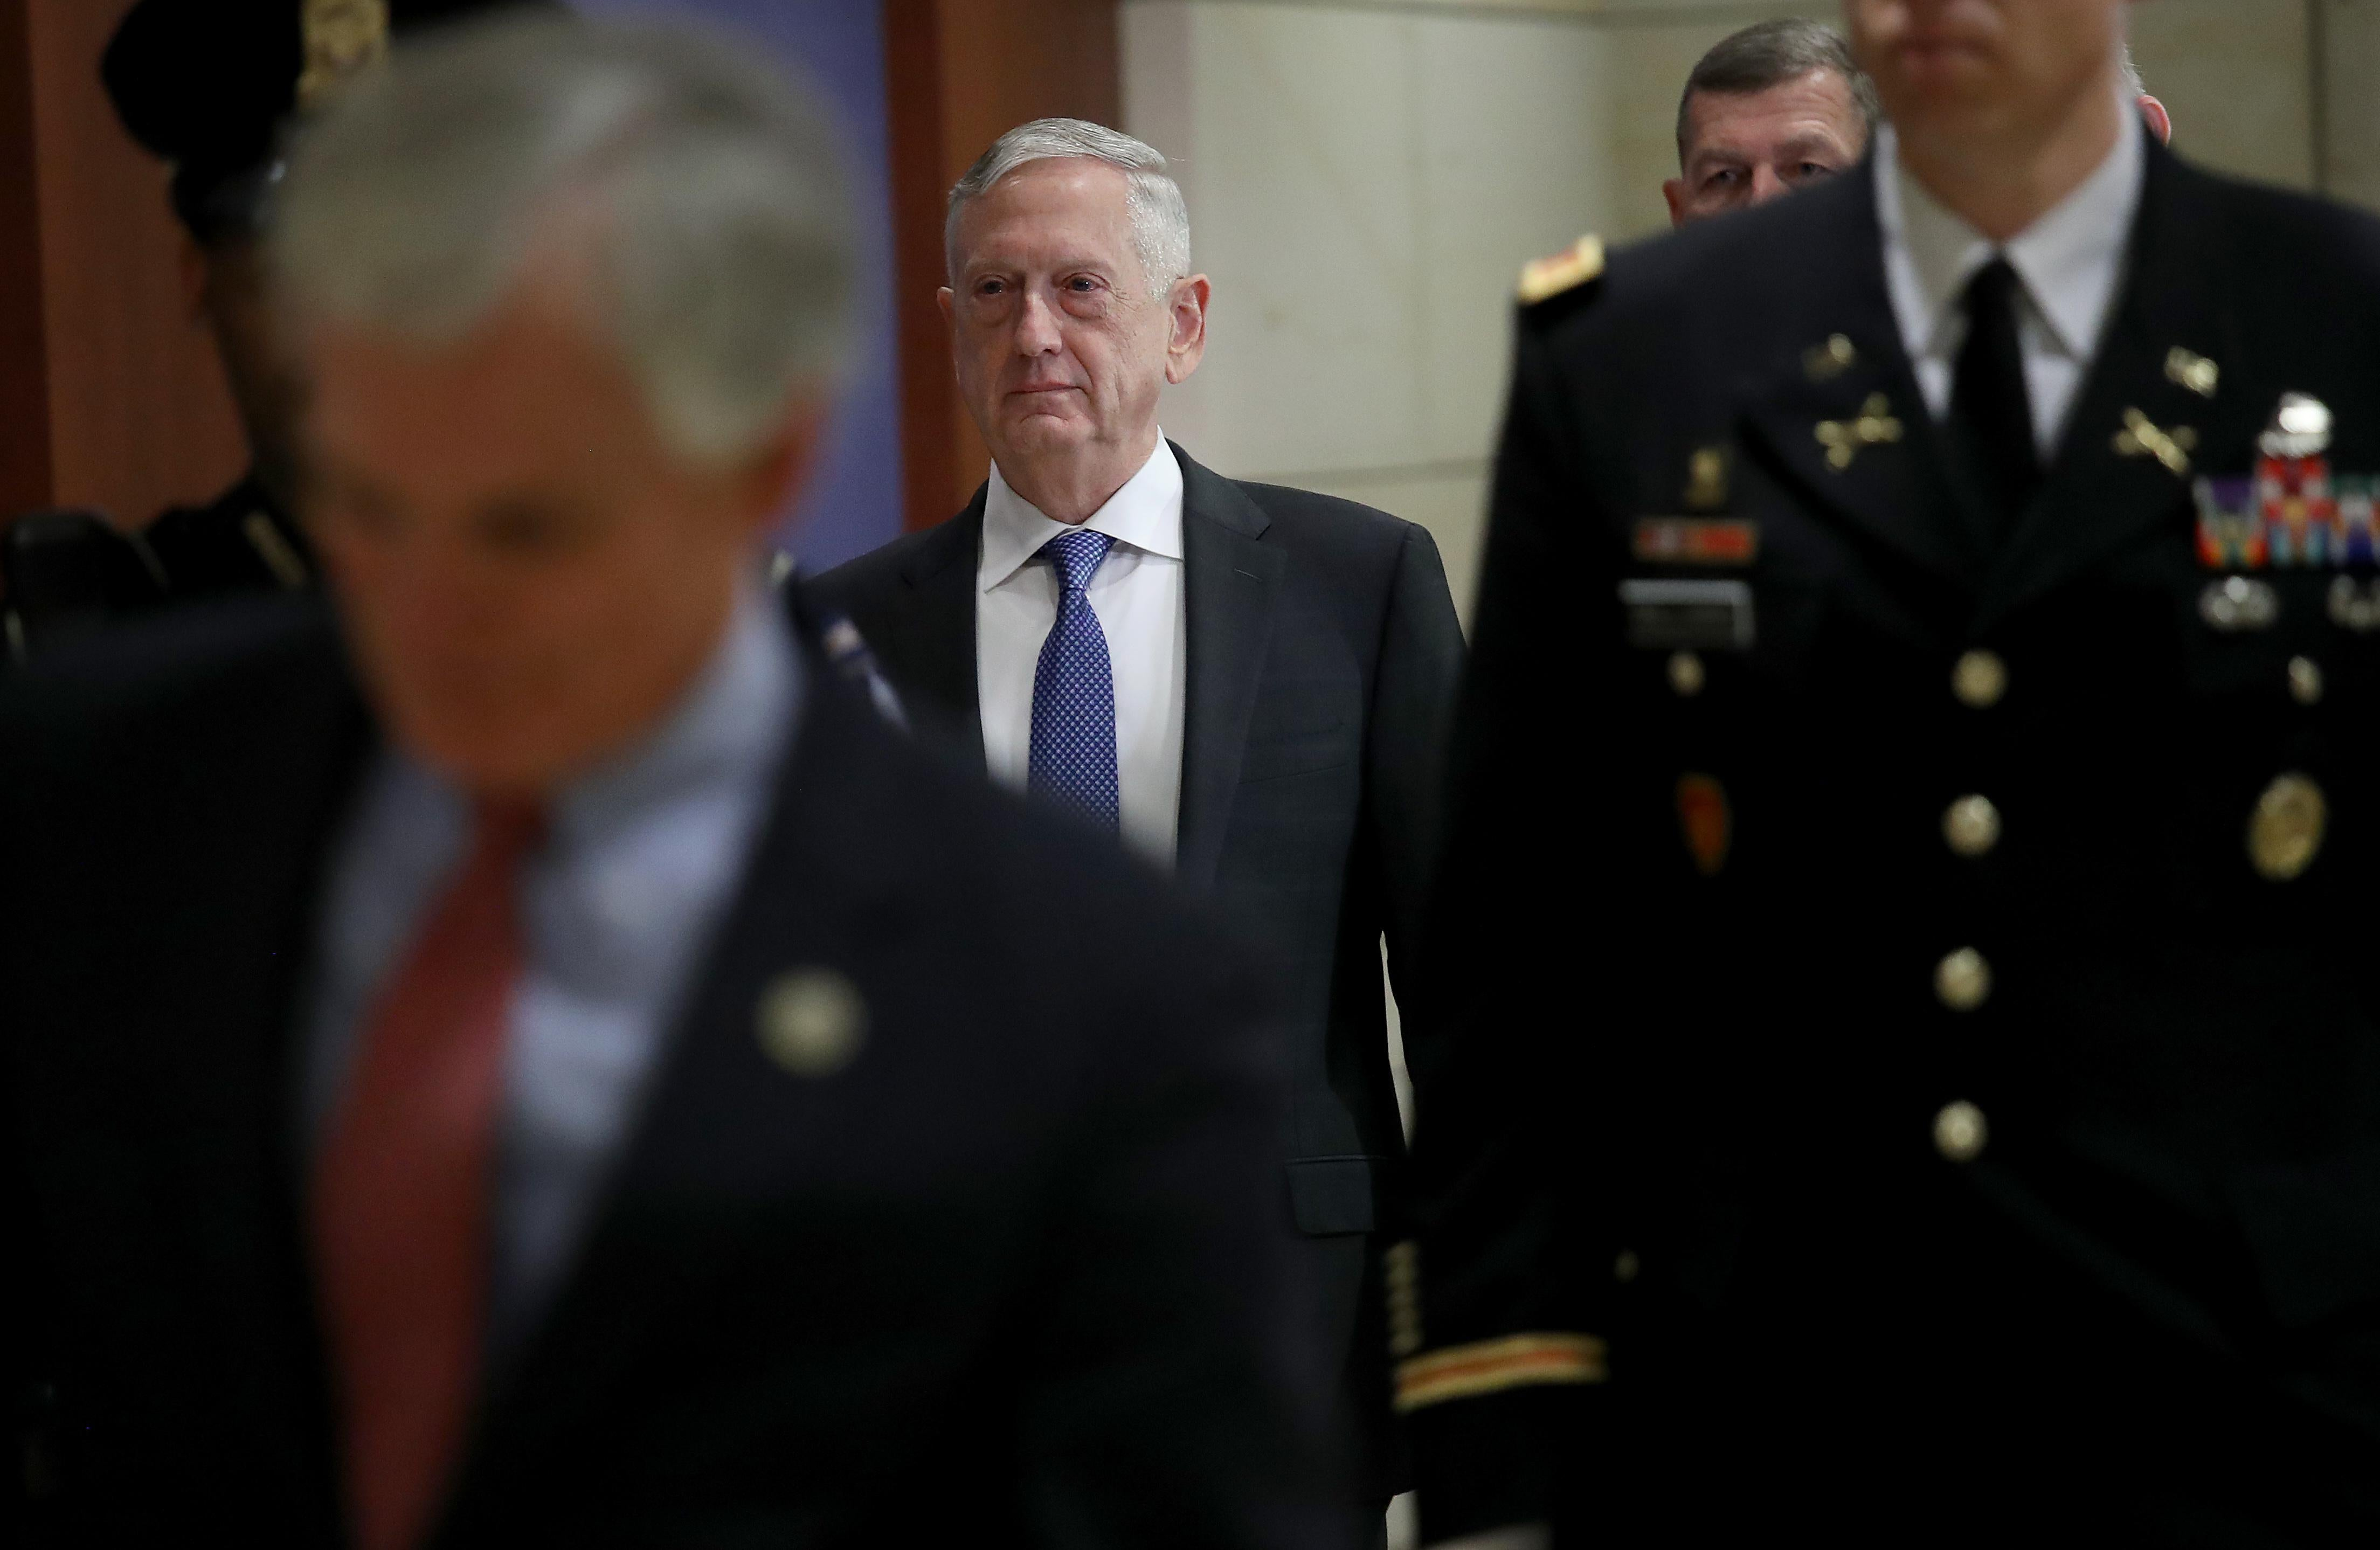 U.S. Secretary of Defense Jim Mattis arrives for a closed intelligence briefing at the U.S. Capitol with members of the House of Representatives.